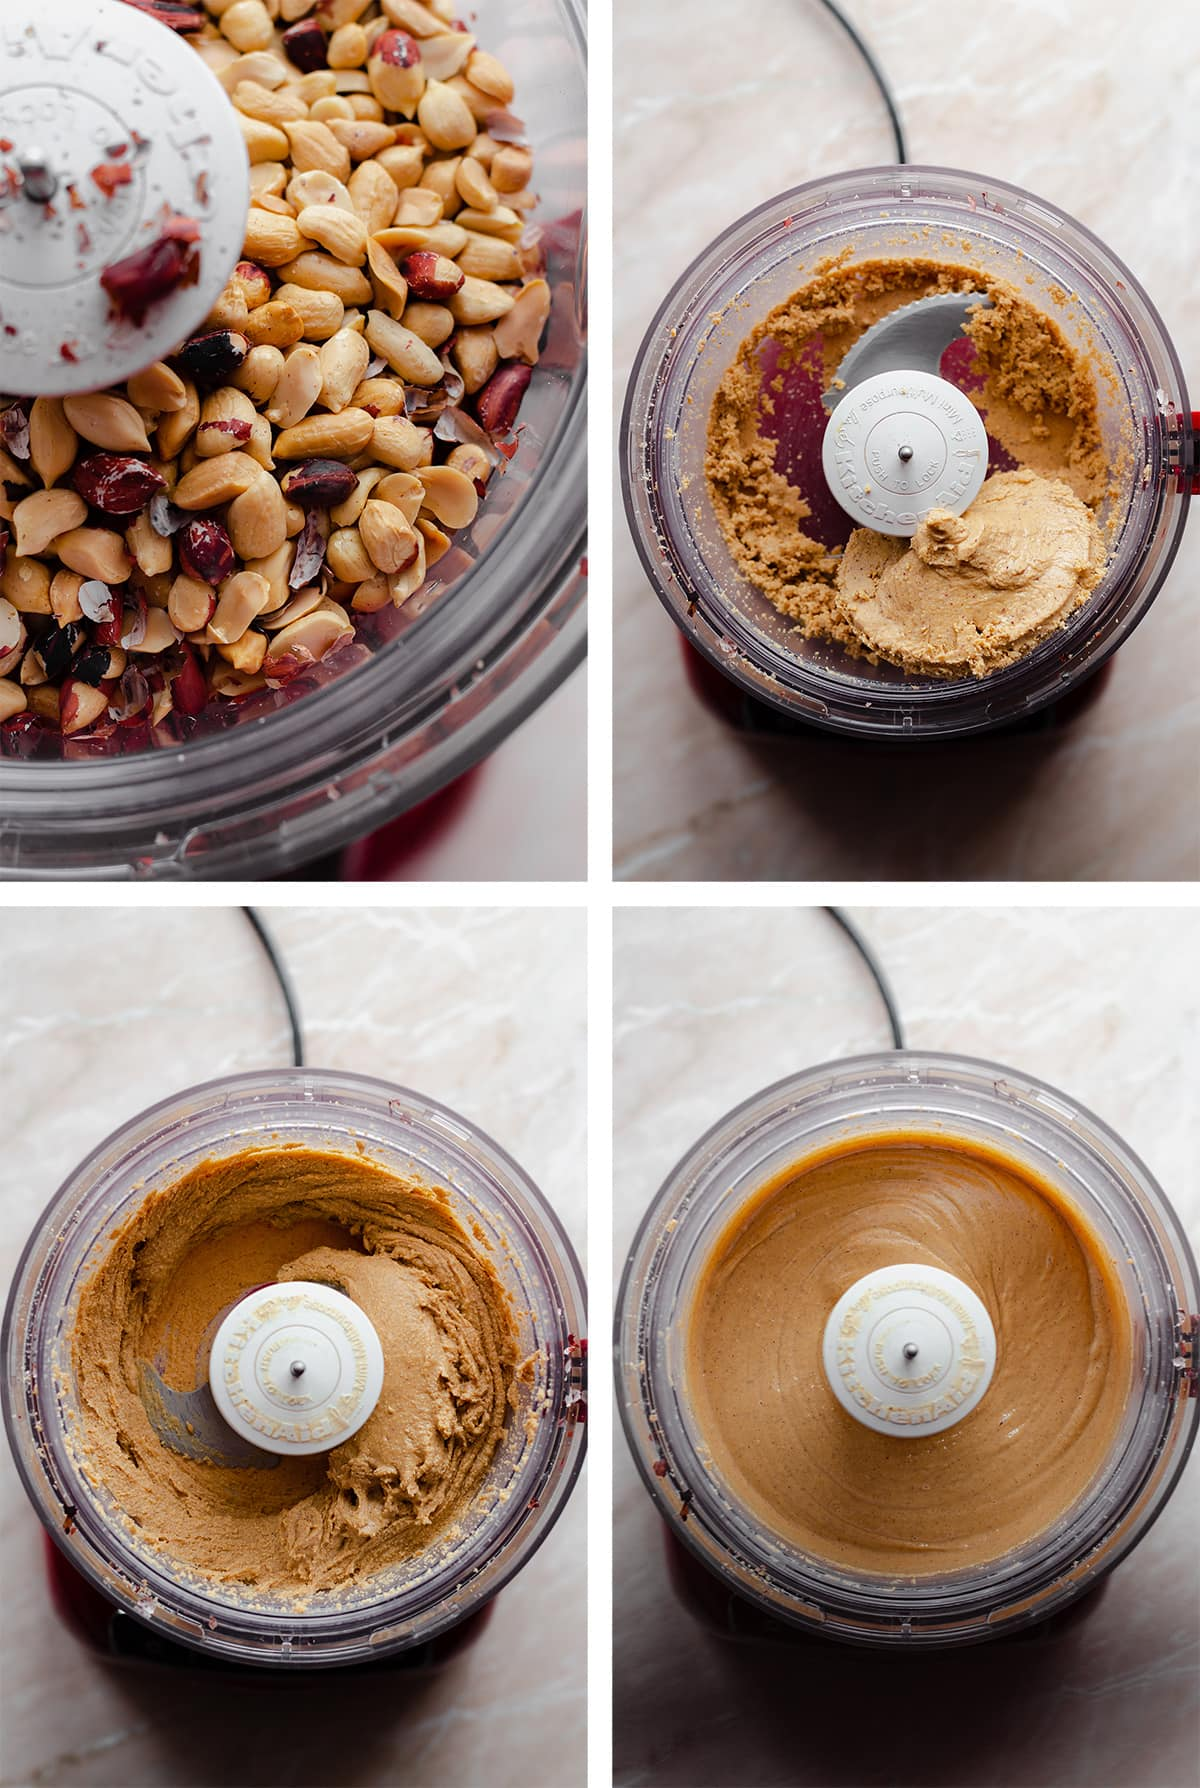 4 process shots of making wild peanut butter